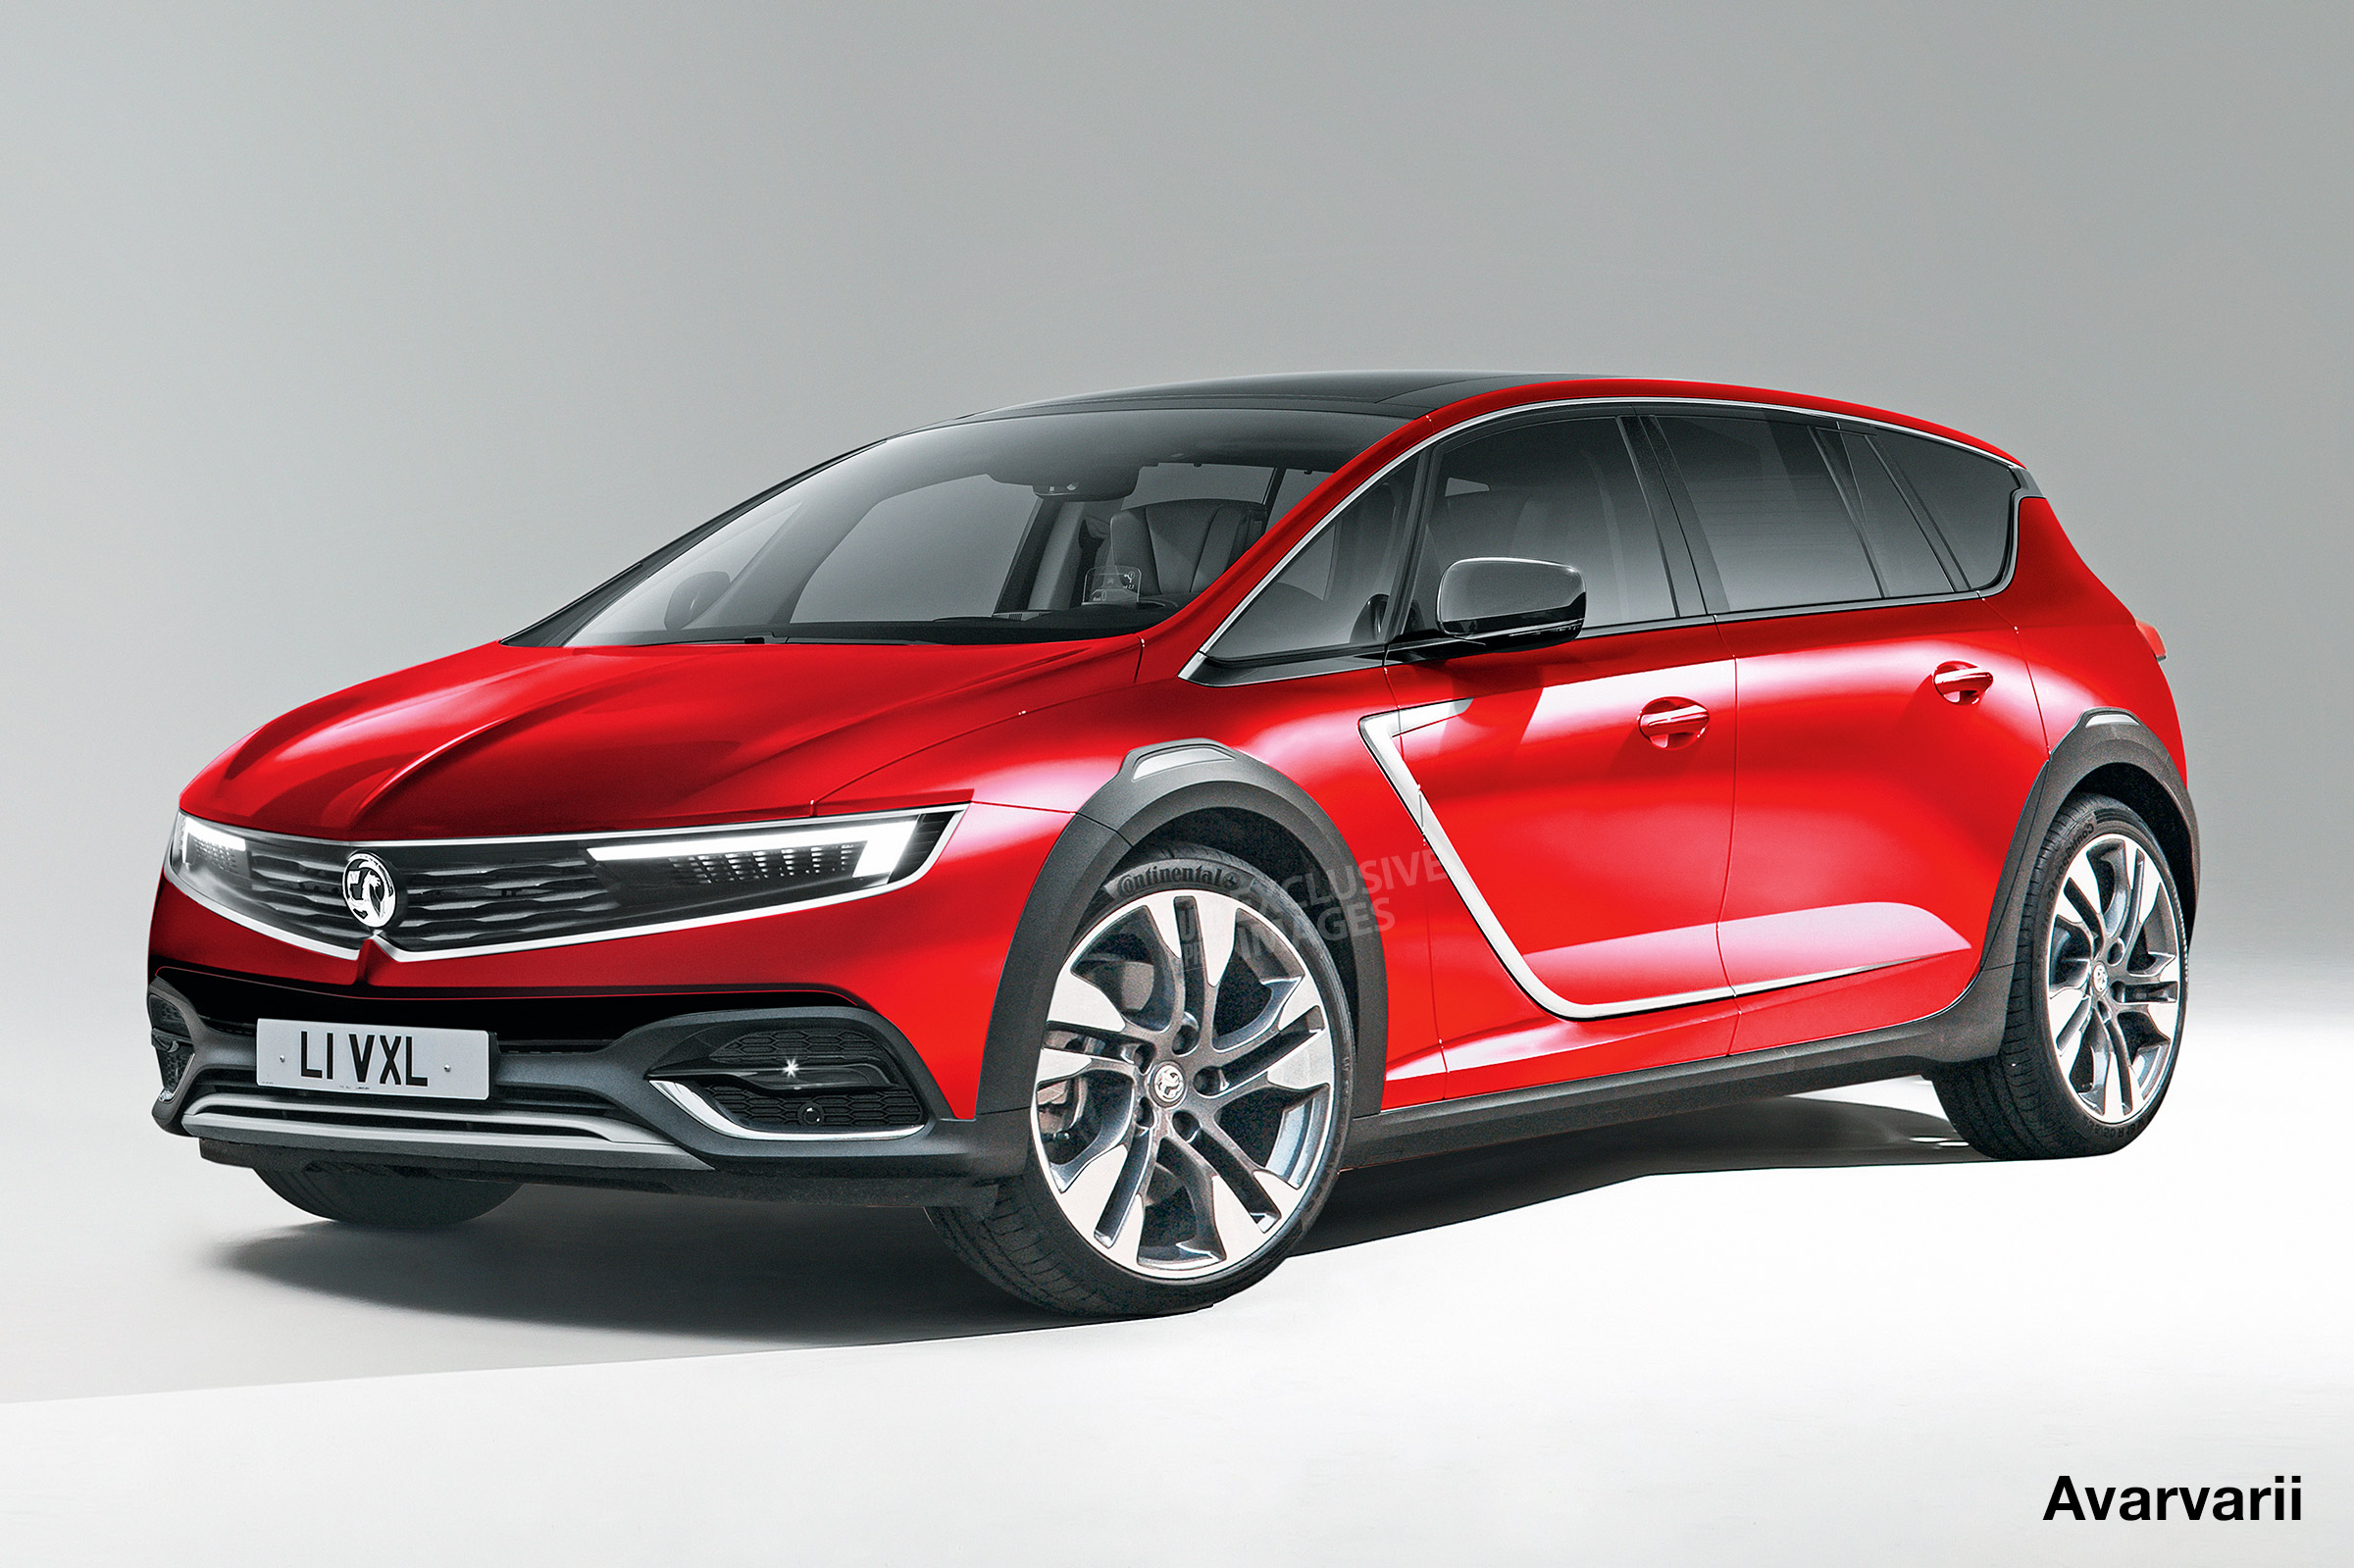 new 2022 vauxhall insignia to get radical crossover look